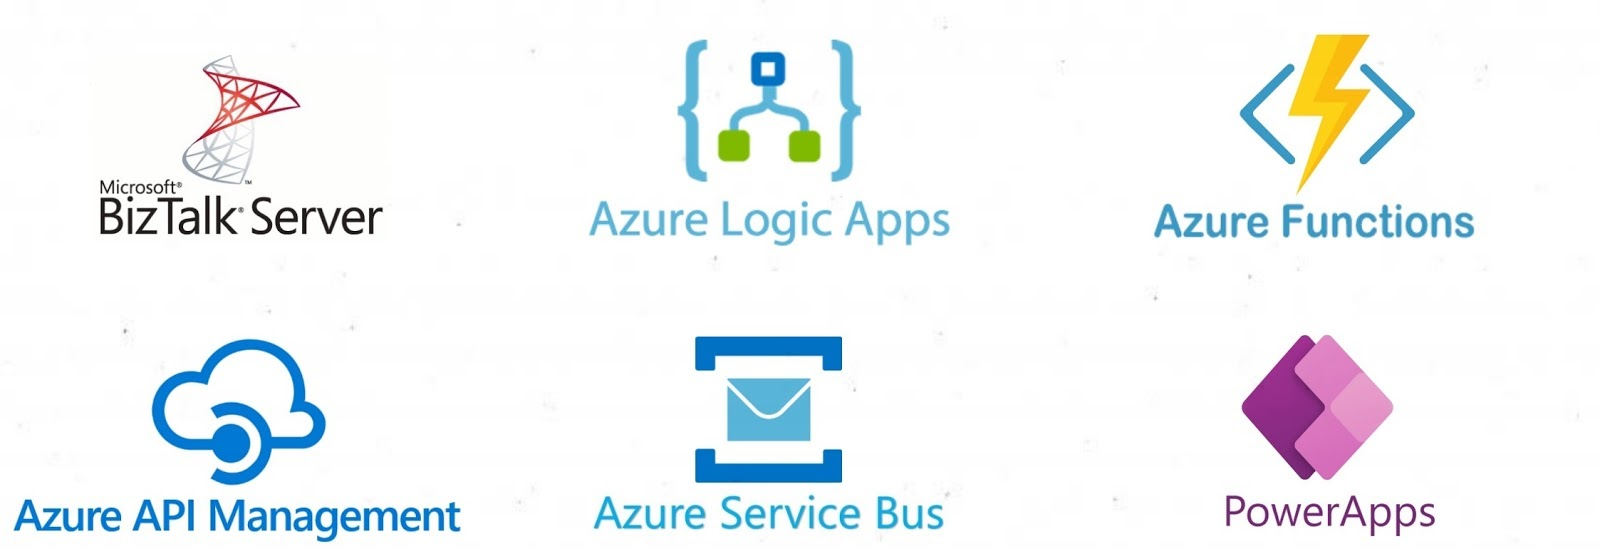 April 12, 2021 Weekly Update on Microsoft Integration Platform & Azure iPaaS